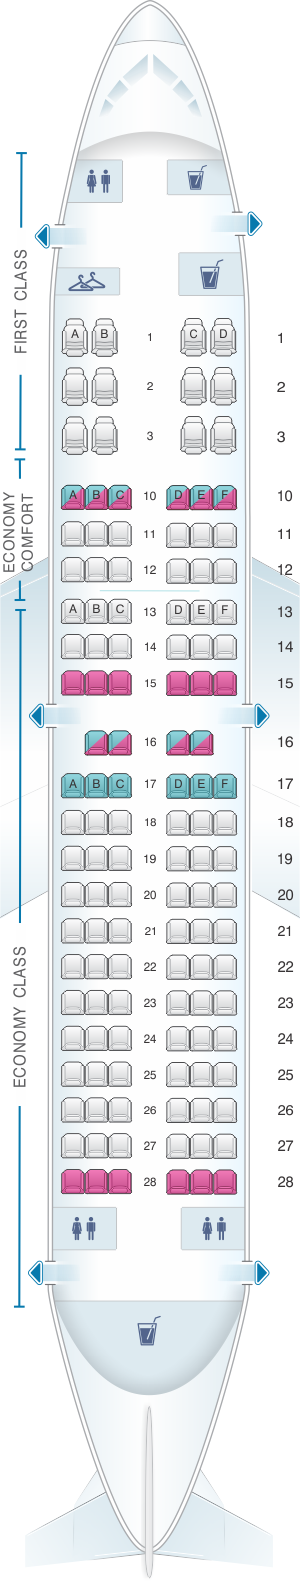 Seat map for Delta Air Lines Boeing B737 700 (73W)